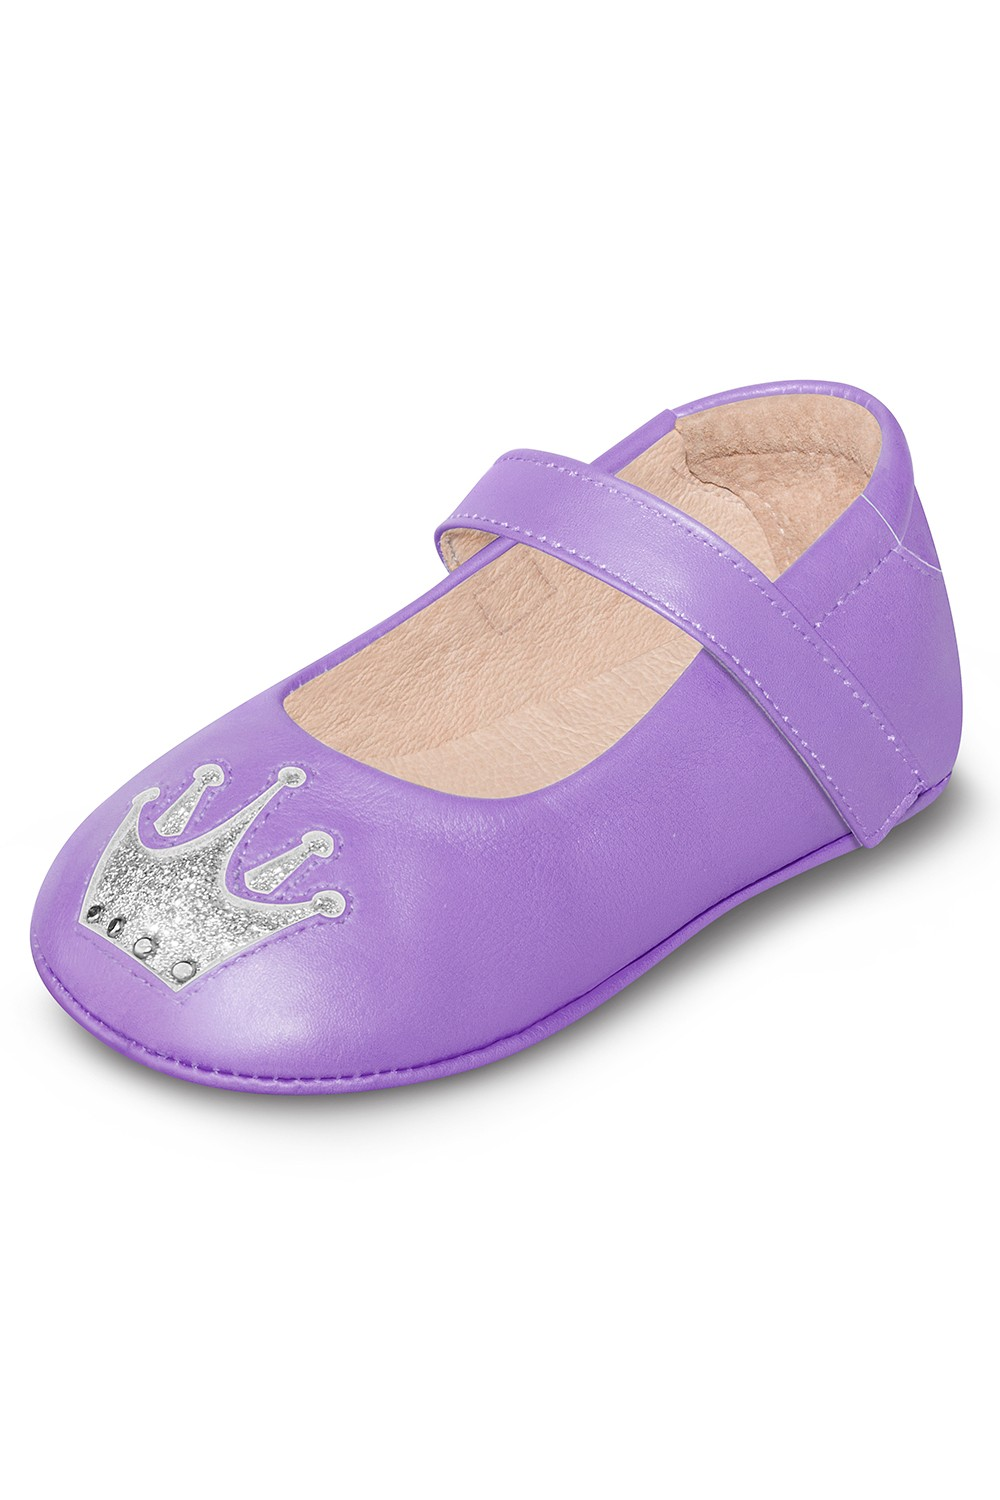 Crown Ballet Flat Babies Fashion Shoes